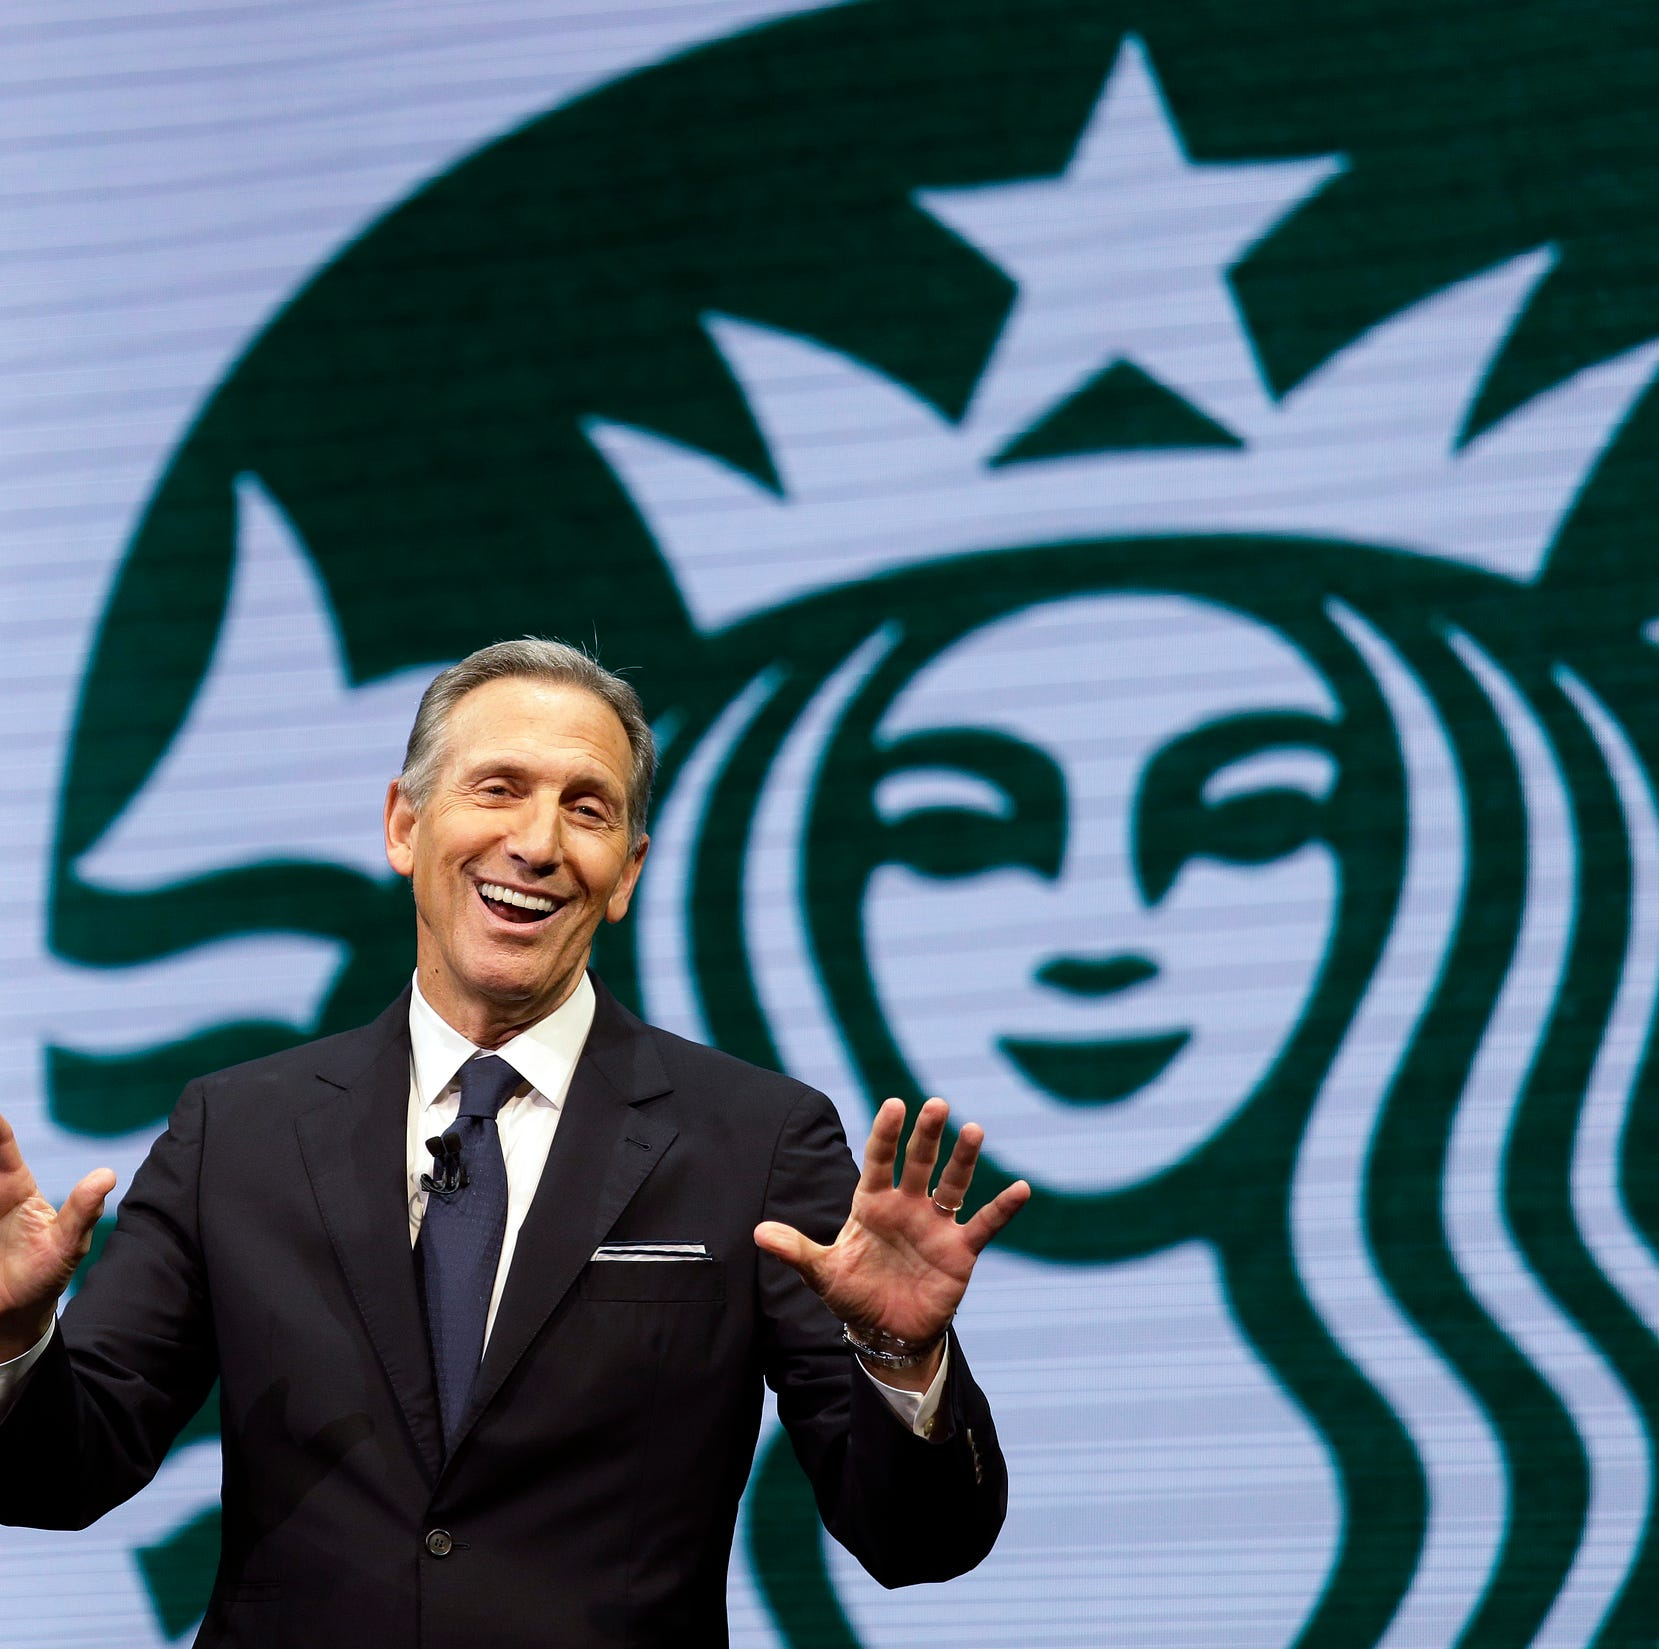 Howard Schultz says he would oppose reparations, but suggests greater funding of HBCUs